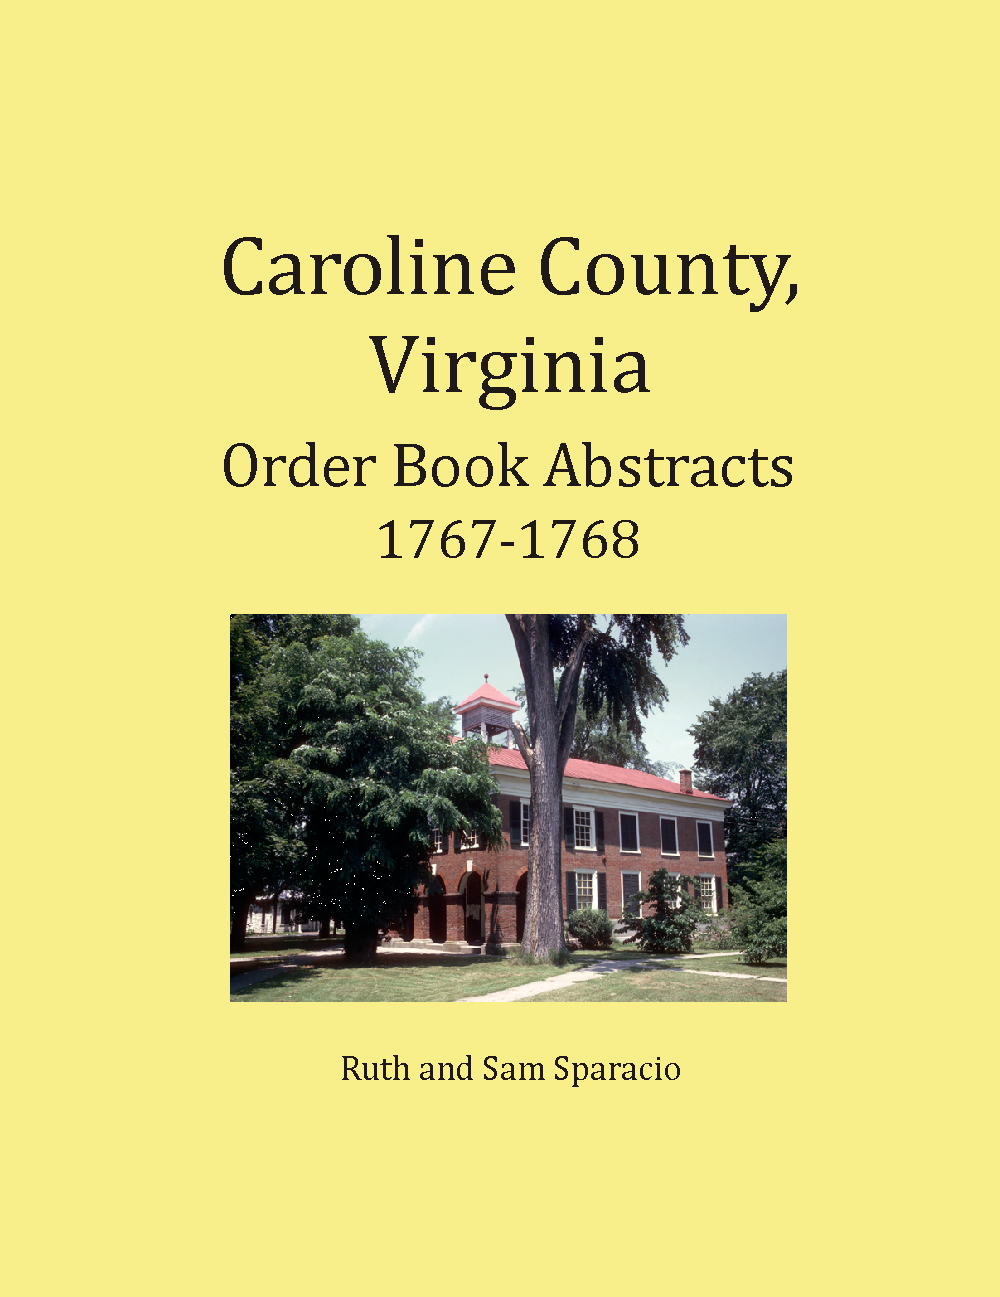 Caroline County, Virginia Order Book Abstracts, 1767-1768